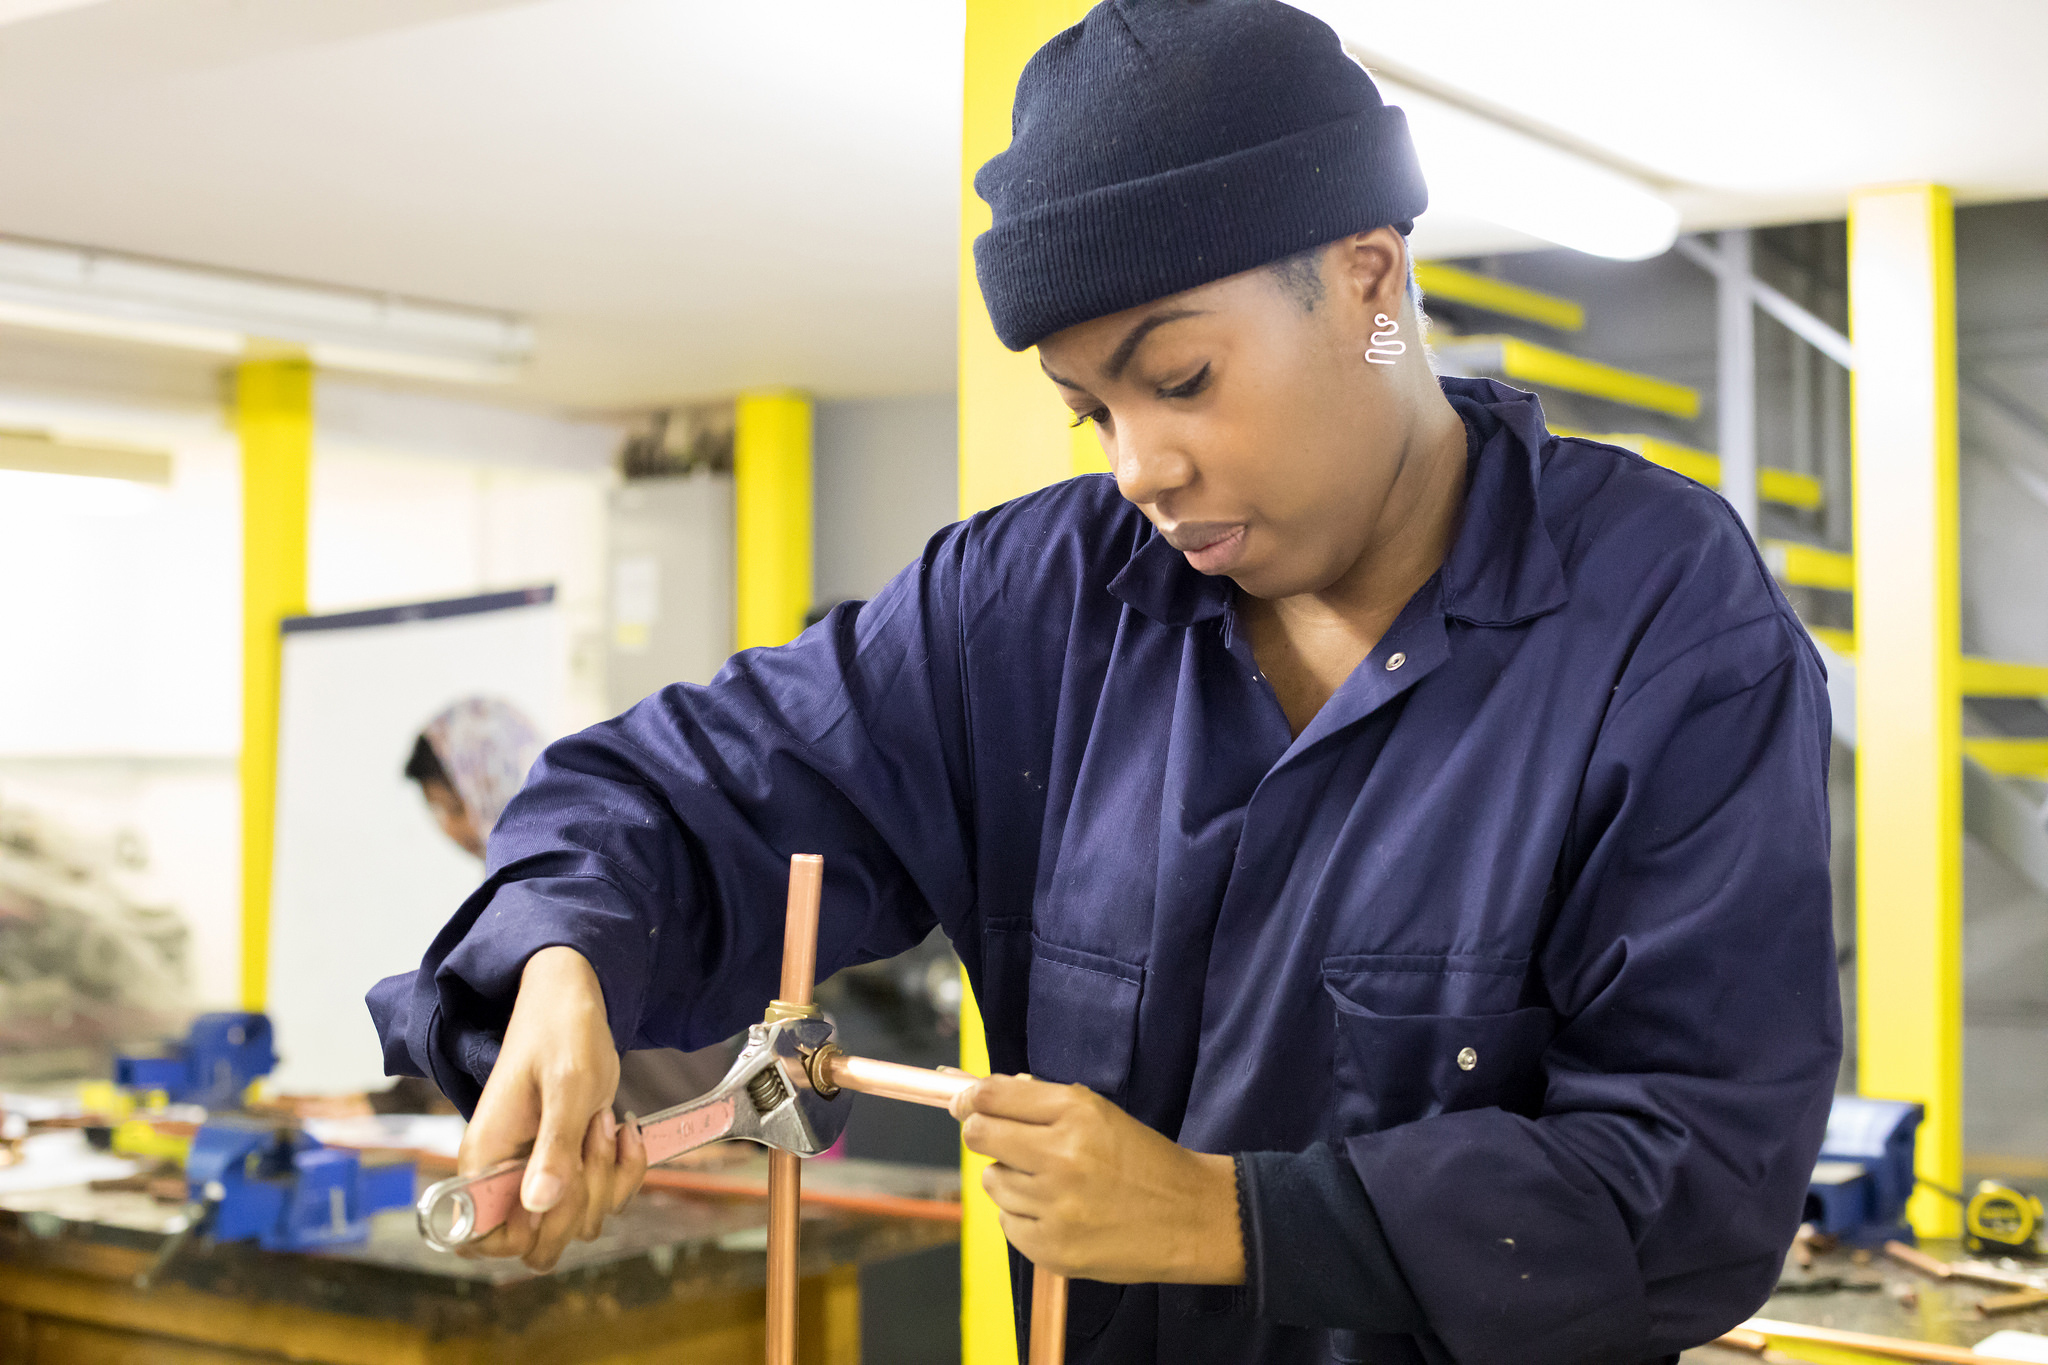 The programme aims to Boost the number of skilled workers and opportunities in construction, particularly for women and those from black and ethnic minorities